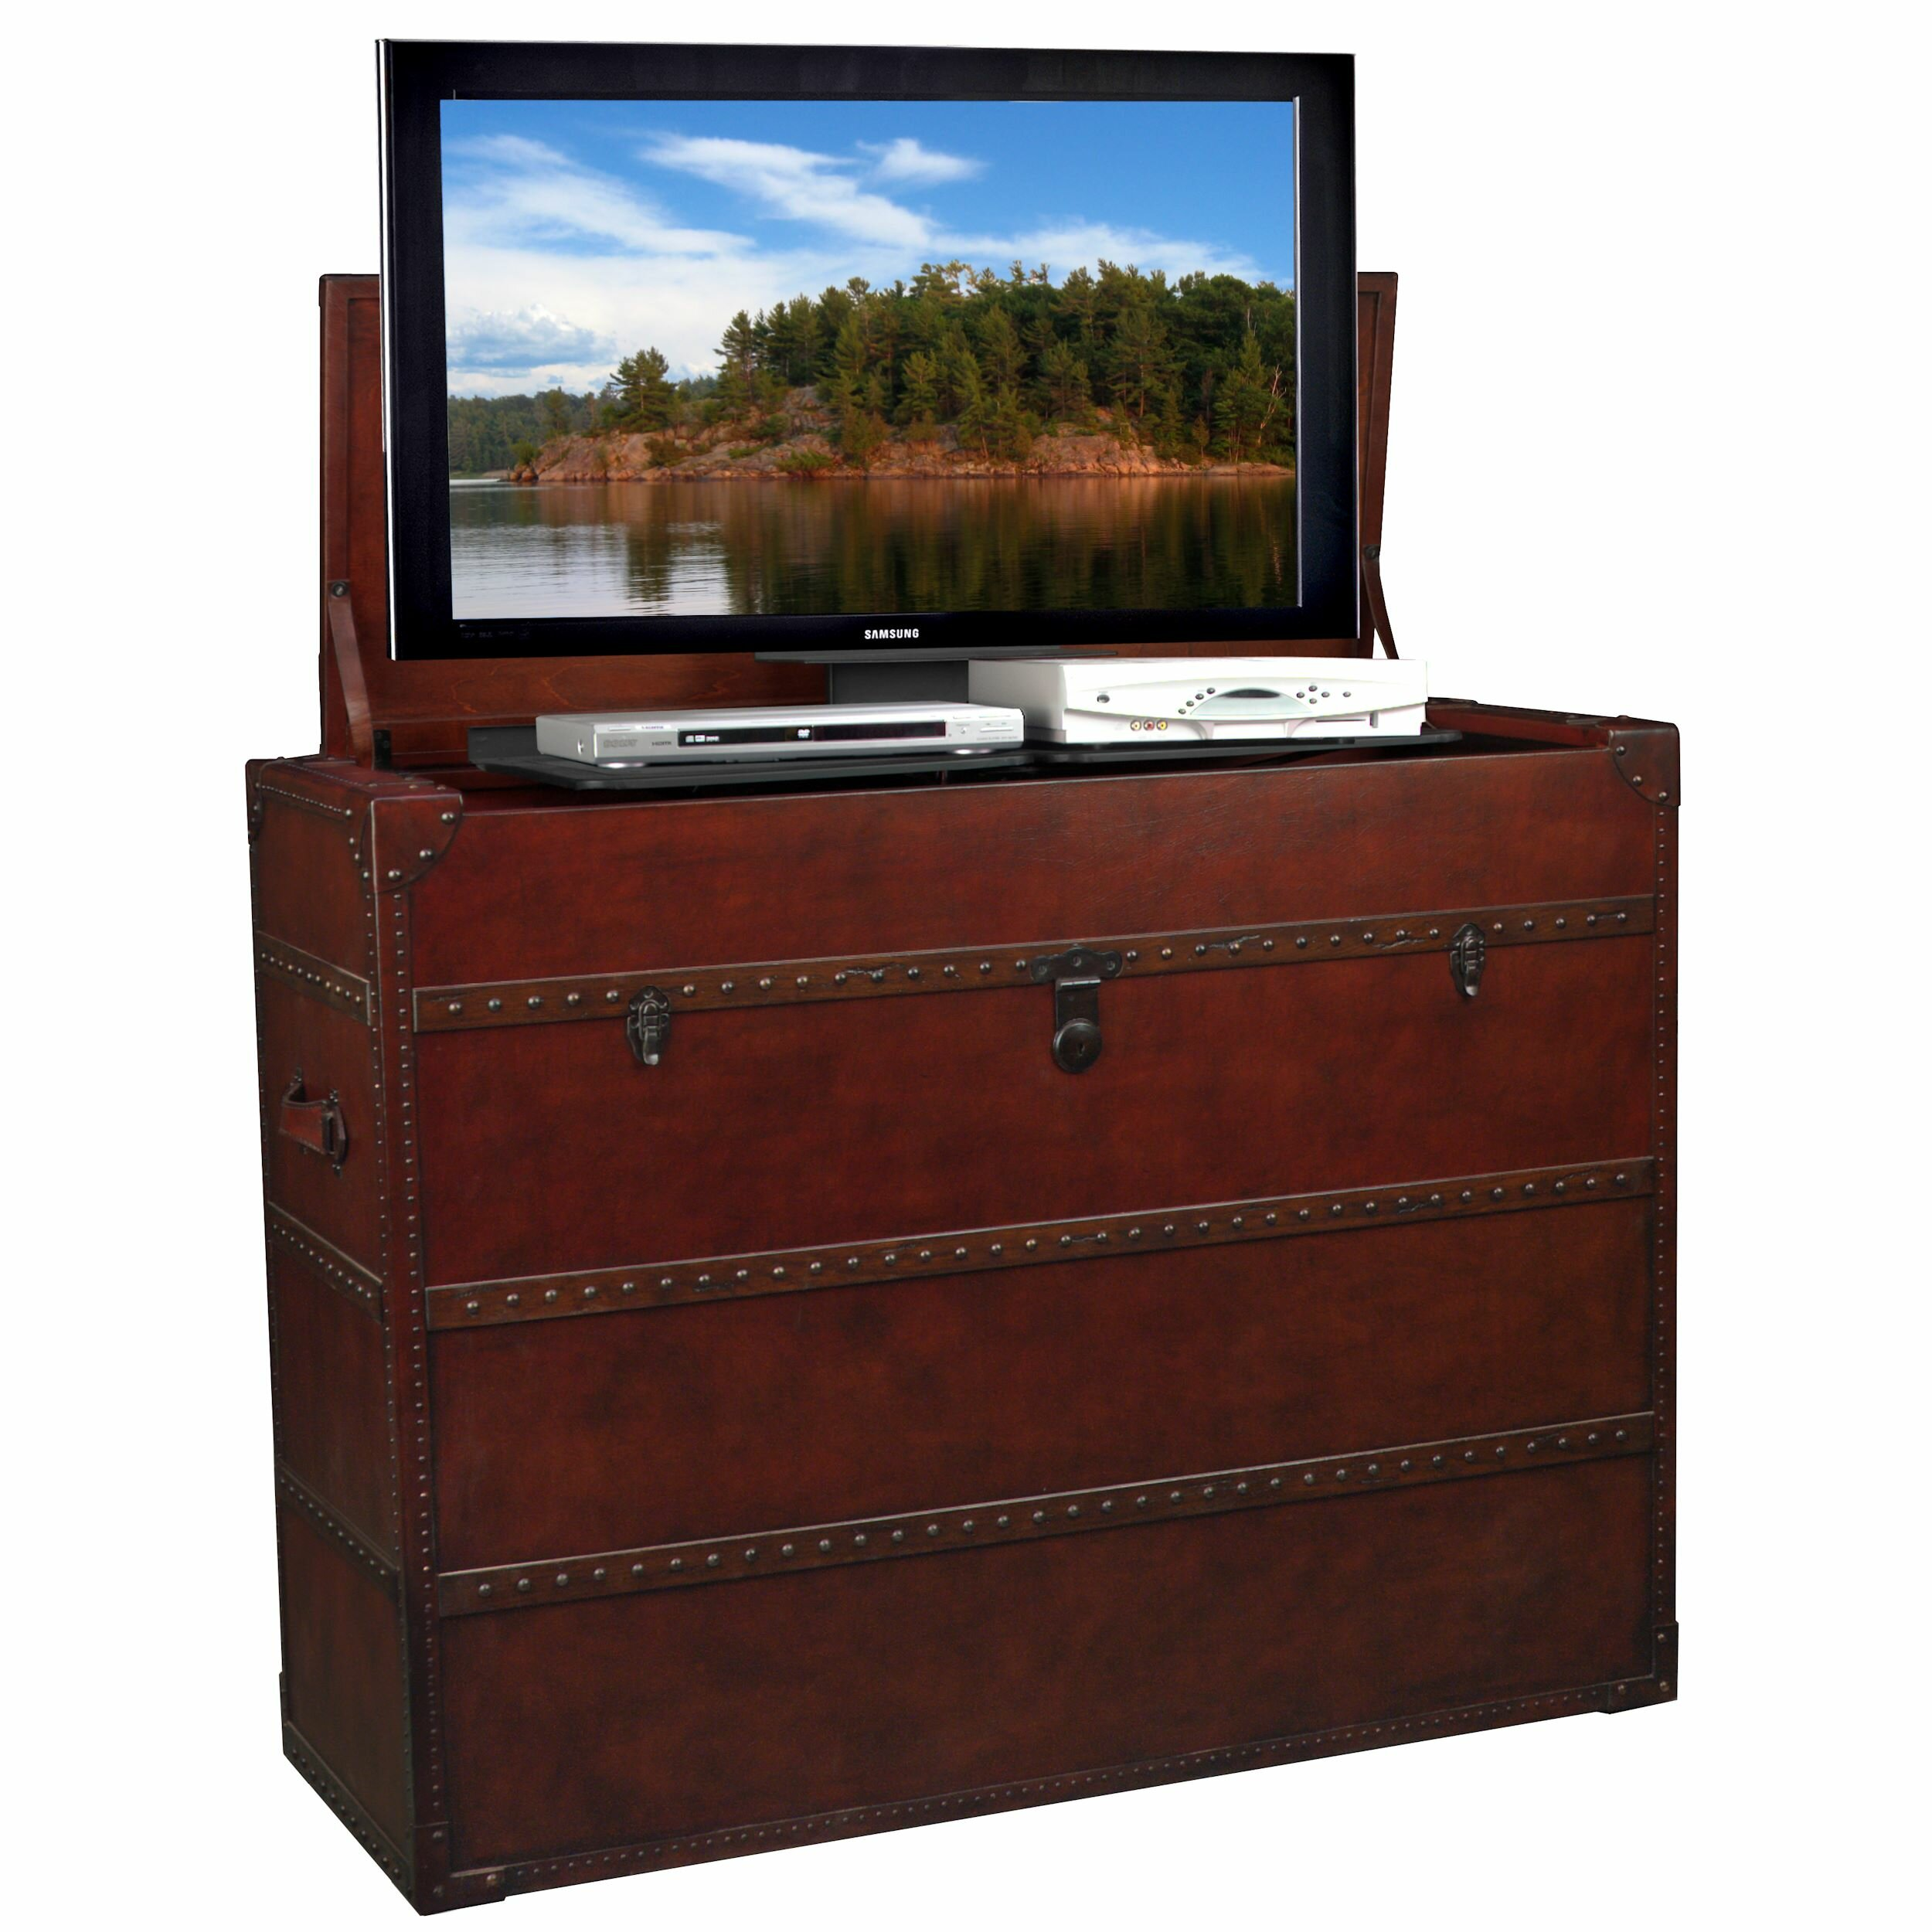 surprise home pedestal stand lovely shaped design cabinet bench announcing tv www ideas on l buy with